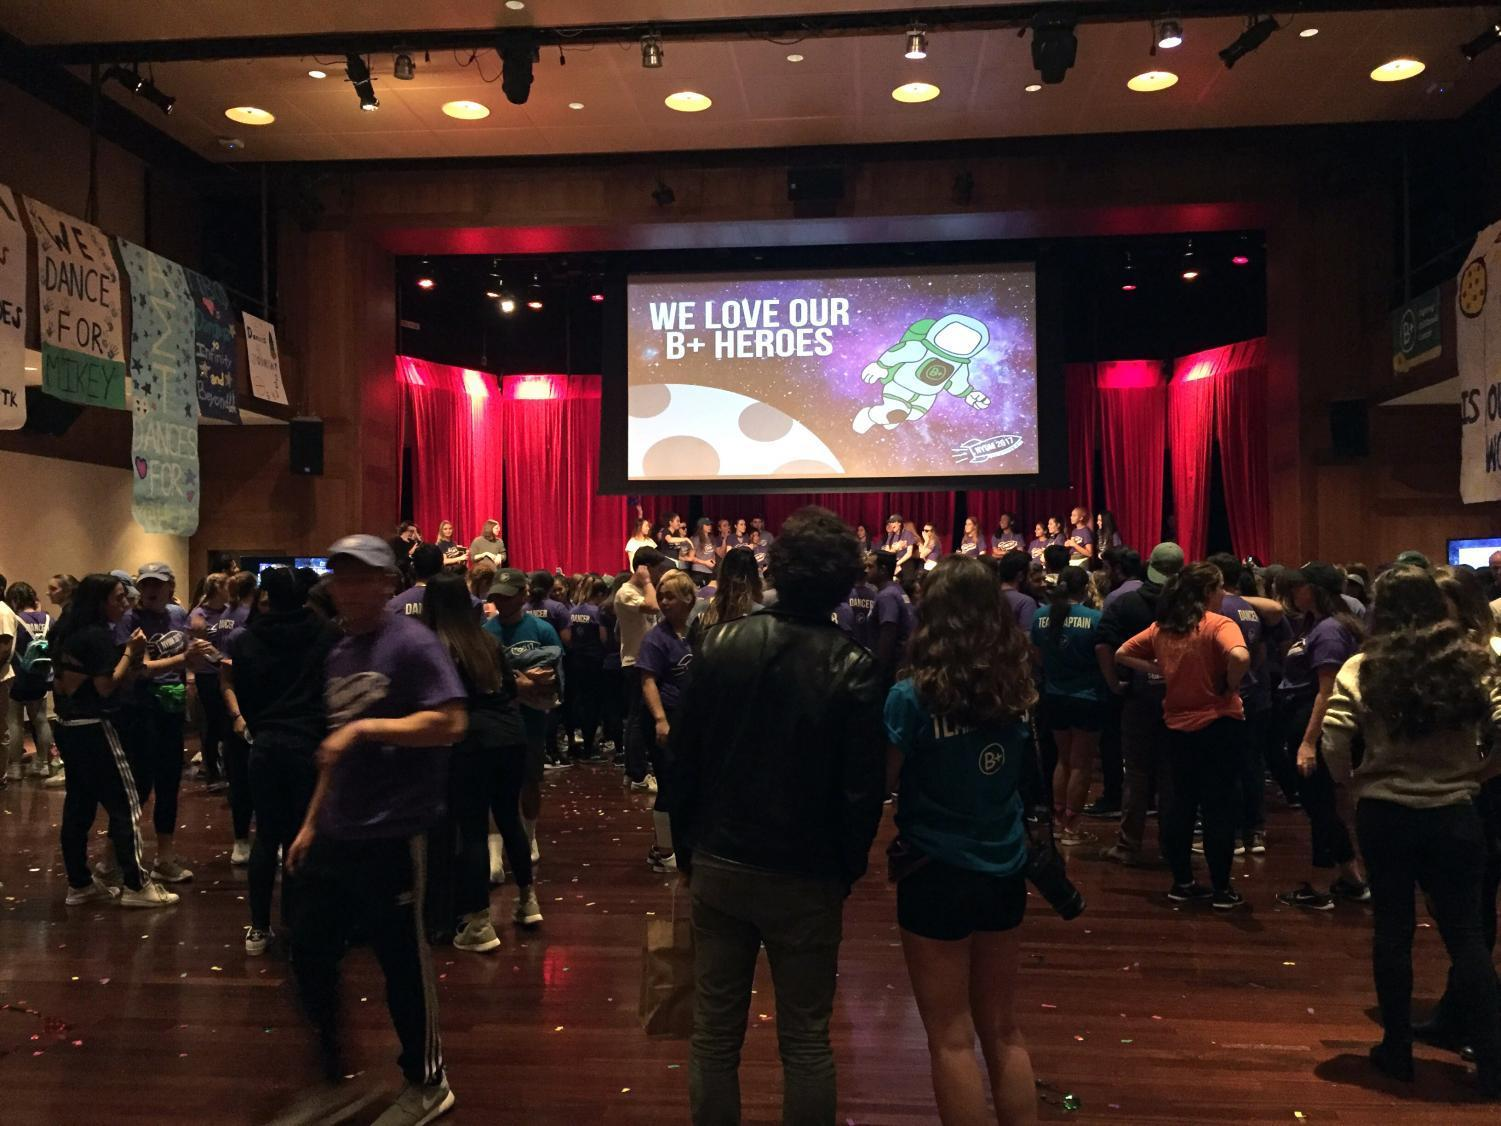 At Kimmel on Nov. 18, students and faculty gathered for the New York Dance Marathon to raise money for Andrew McDonough B+ Foundation.